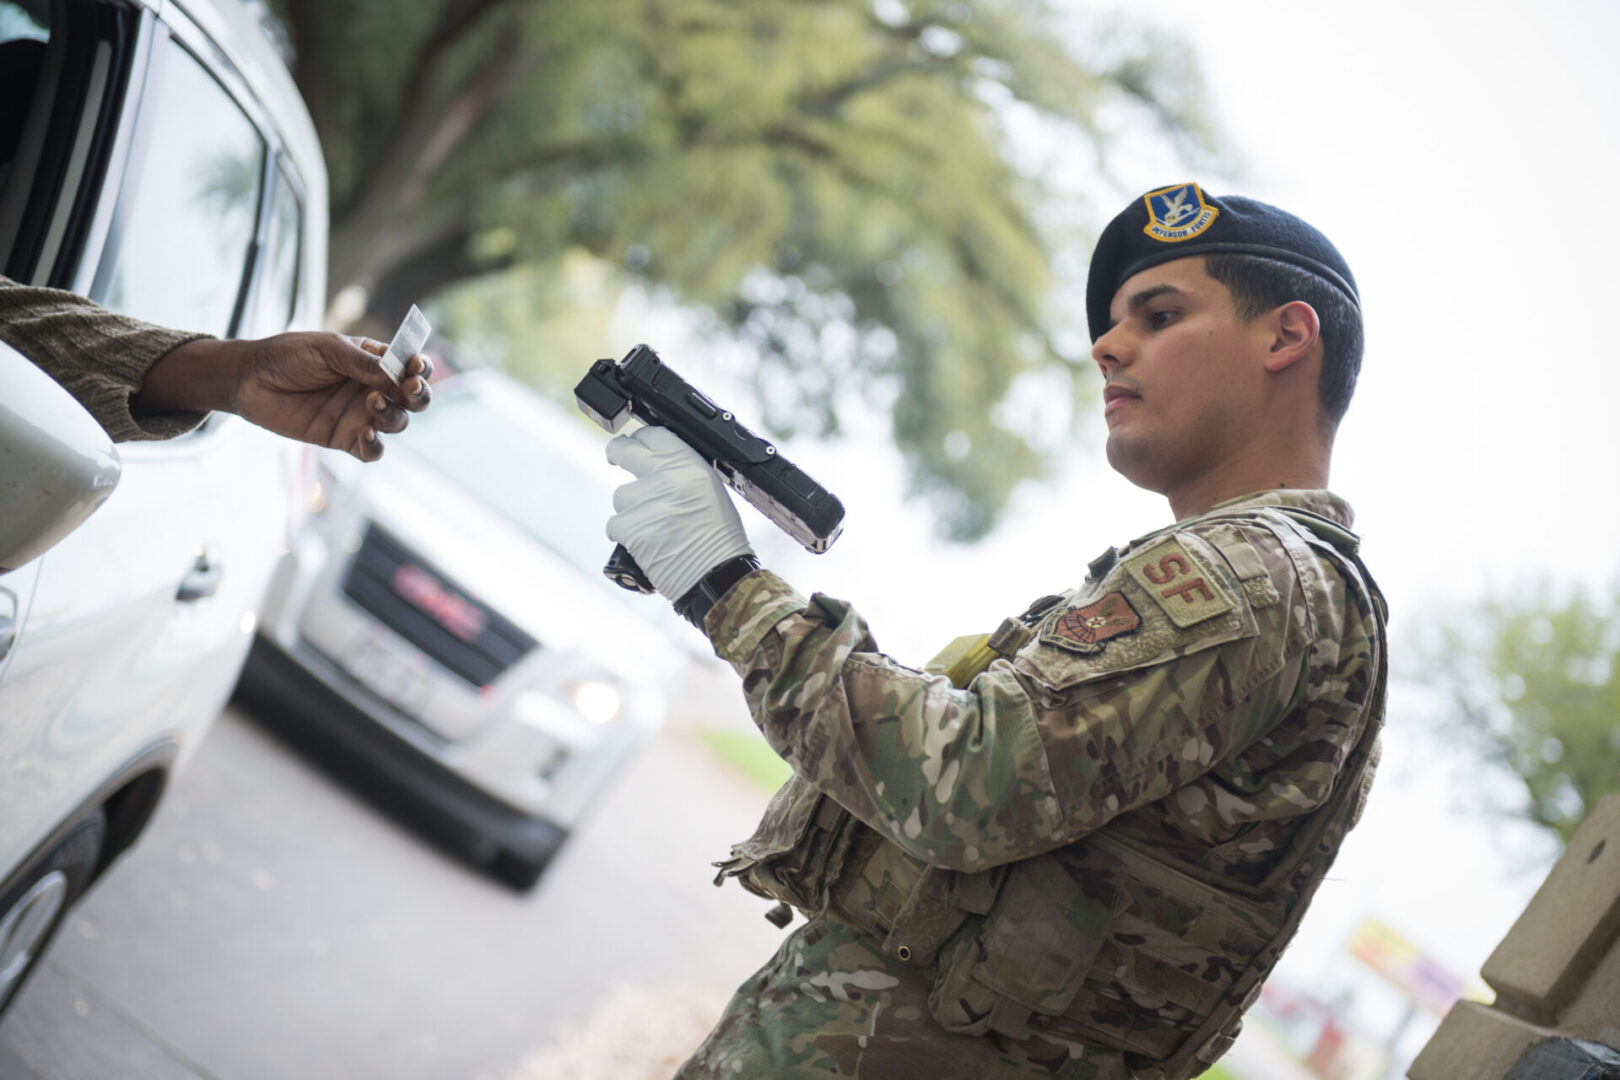 Senior Airman Abner Munoz Rios, 2nd Security Forces Squadron installation patrolman, scans an identification card at Barksdale Air Force Base, La., March 16, 2020. Due to health concerns, security forces modified entry procedures to limit interpersonal contact. (U.S. Air Force photo by Senior Airman Lillian Miller)